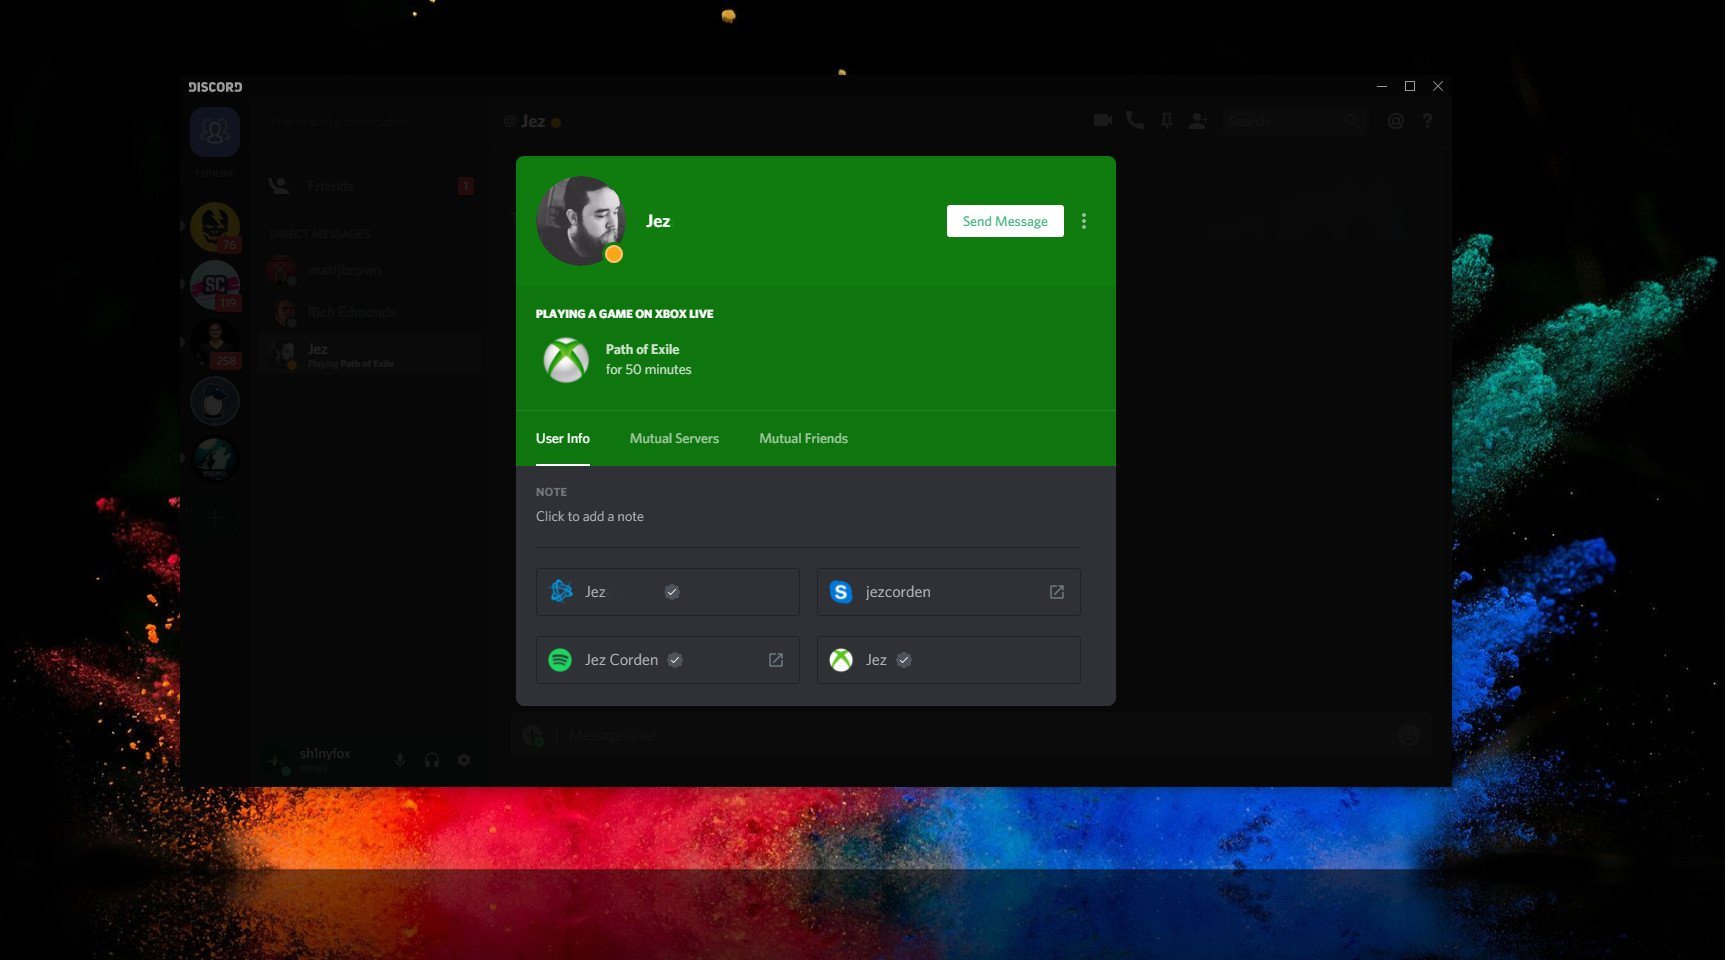 How To Get Discord Integration Working On Xbox One